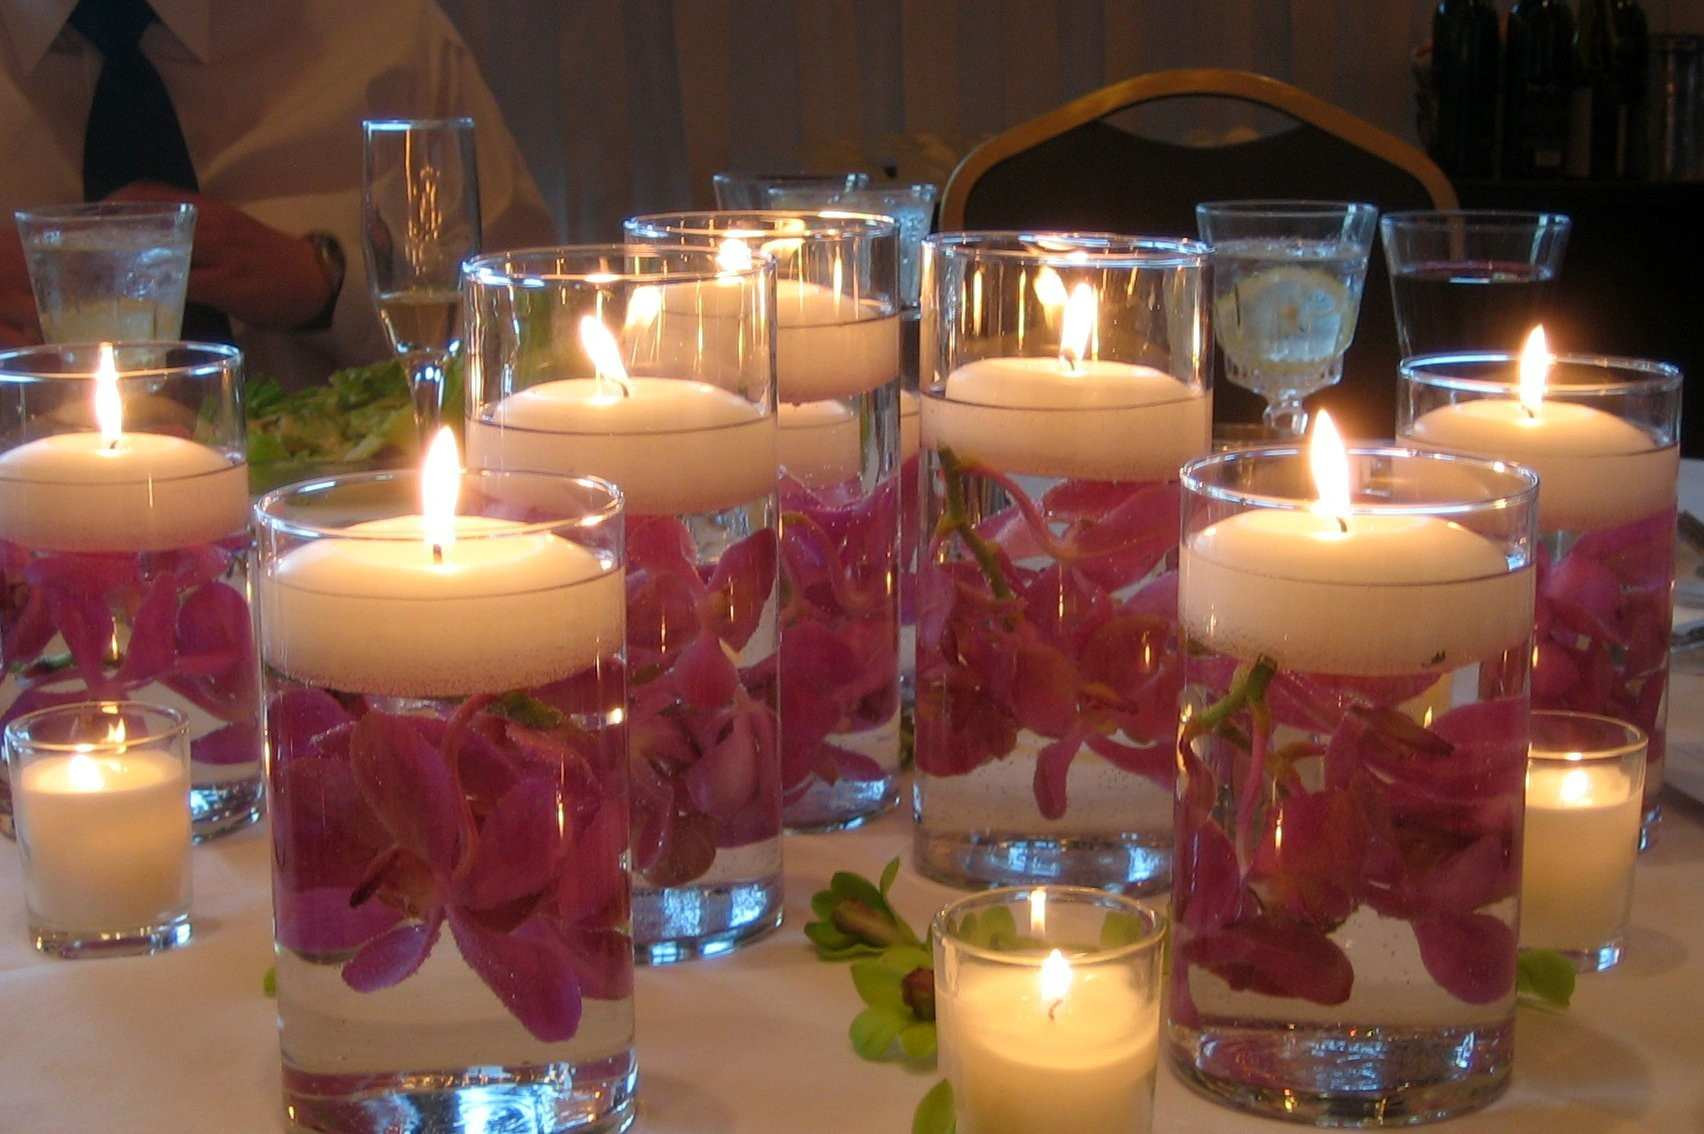 lights for vases centerpiece of decorating ideas for wedding on a budget beautiful dsc h vases throughout decorating ideas for wedding on a budget elegant cheap wedding reception centerpieces low cost wedding centerpiece